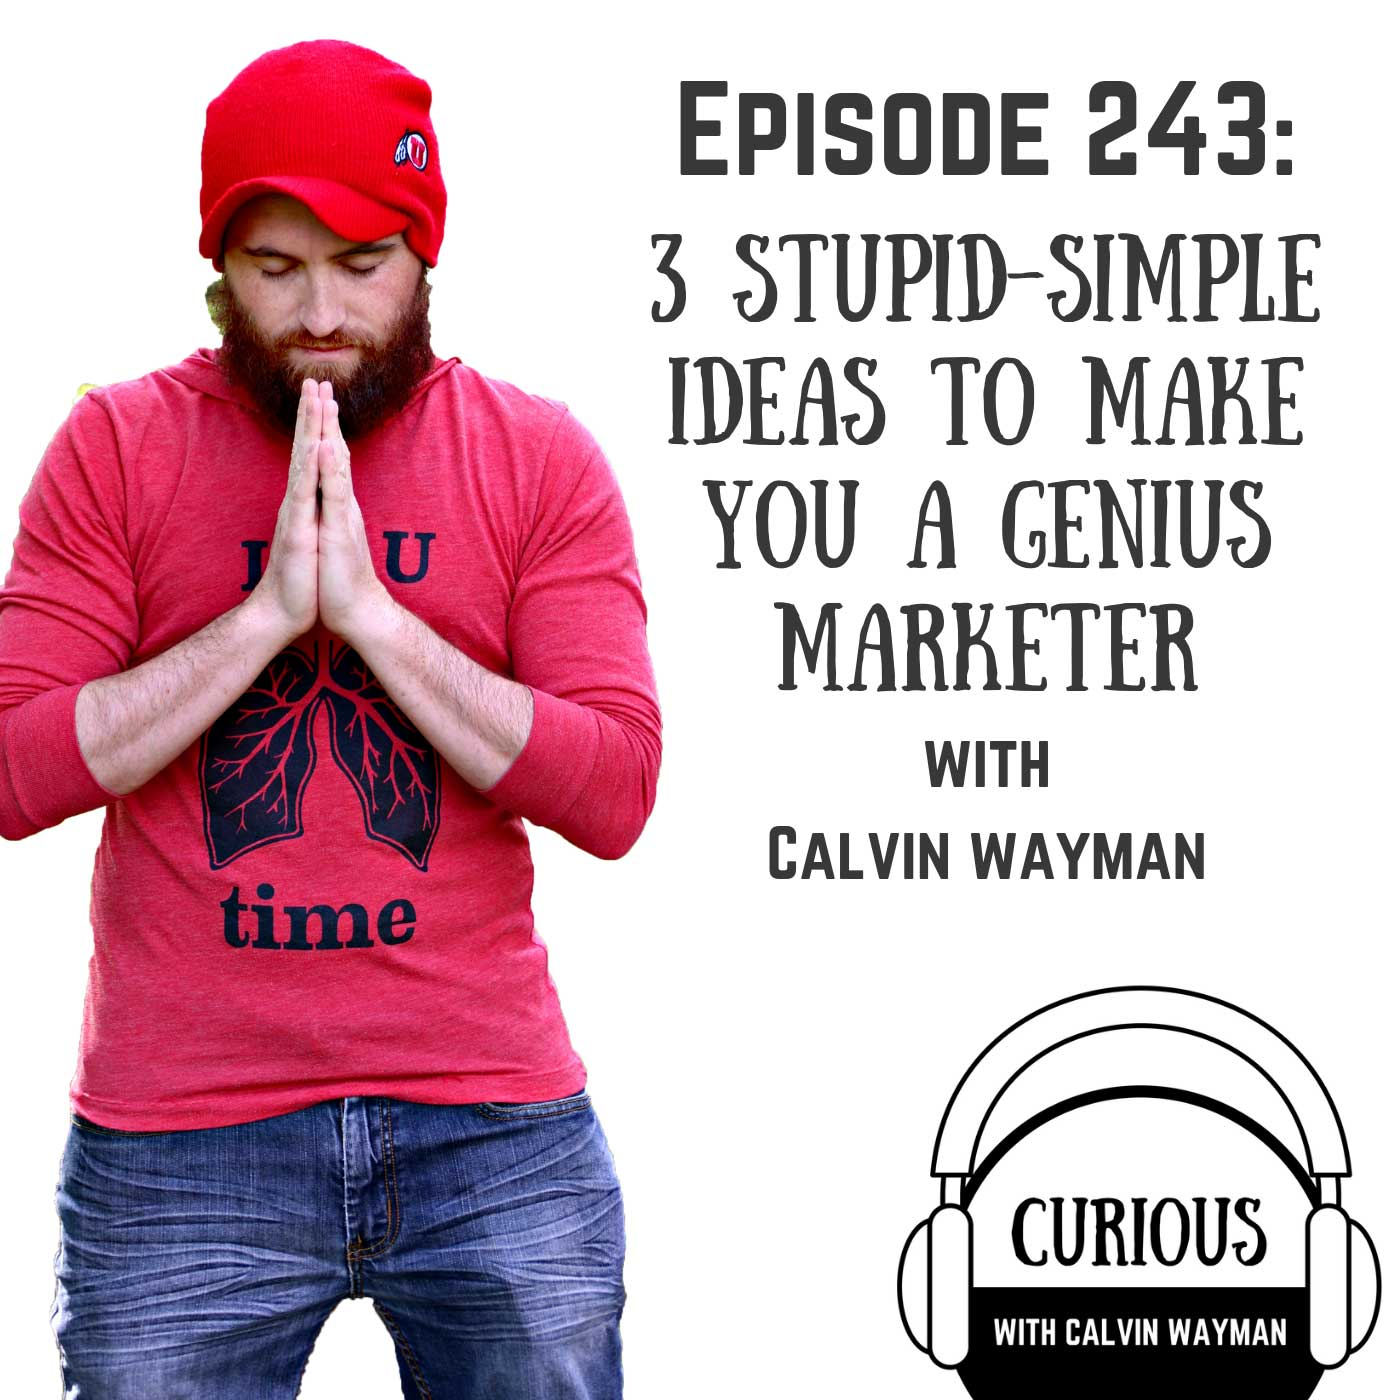 Ep243-3 Stupid-Simple Ideas To Make You a Genius Marketer